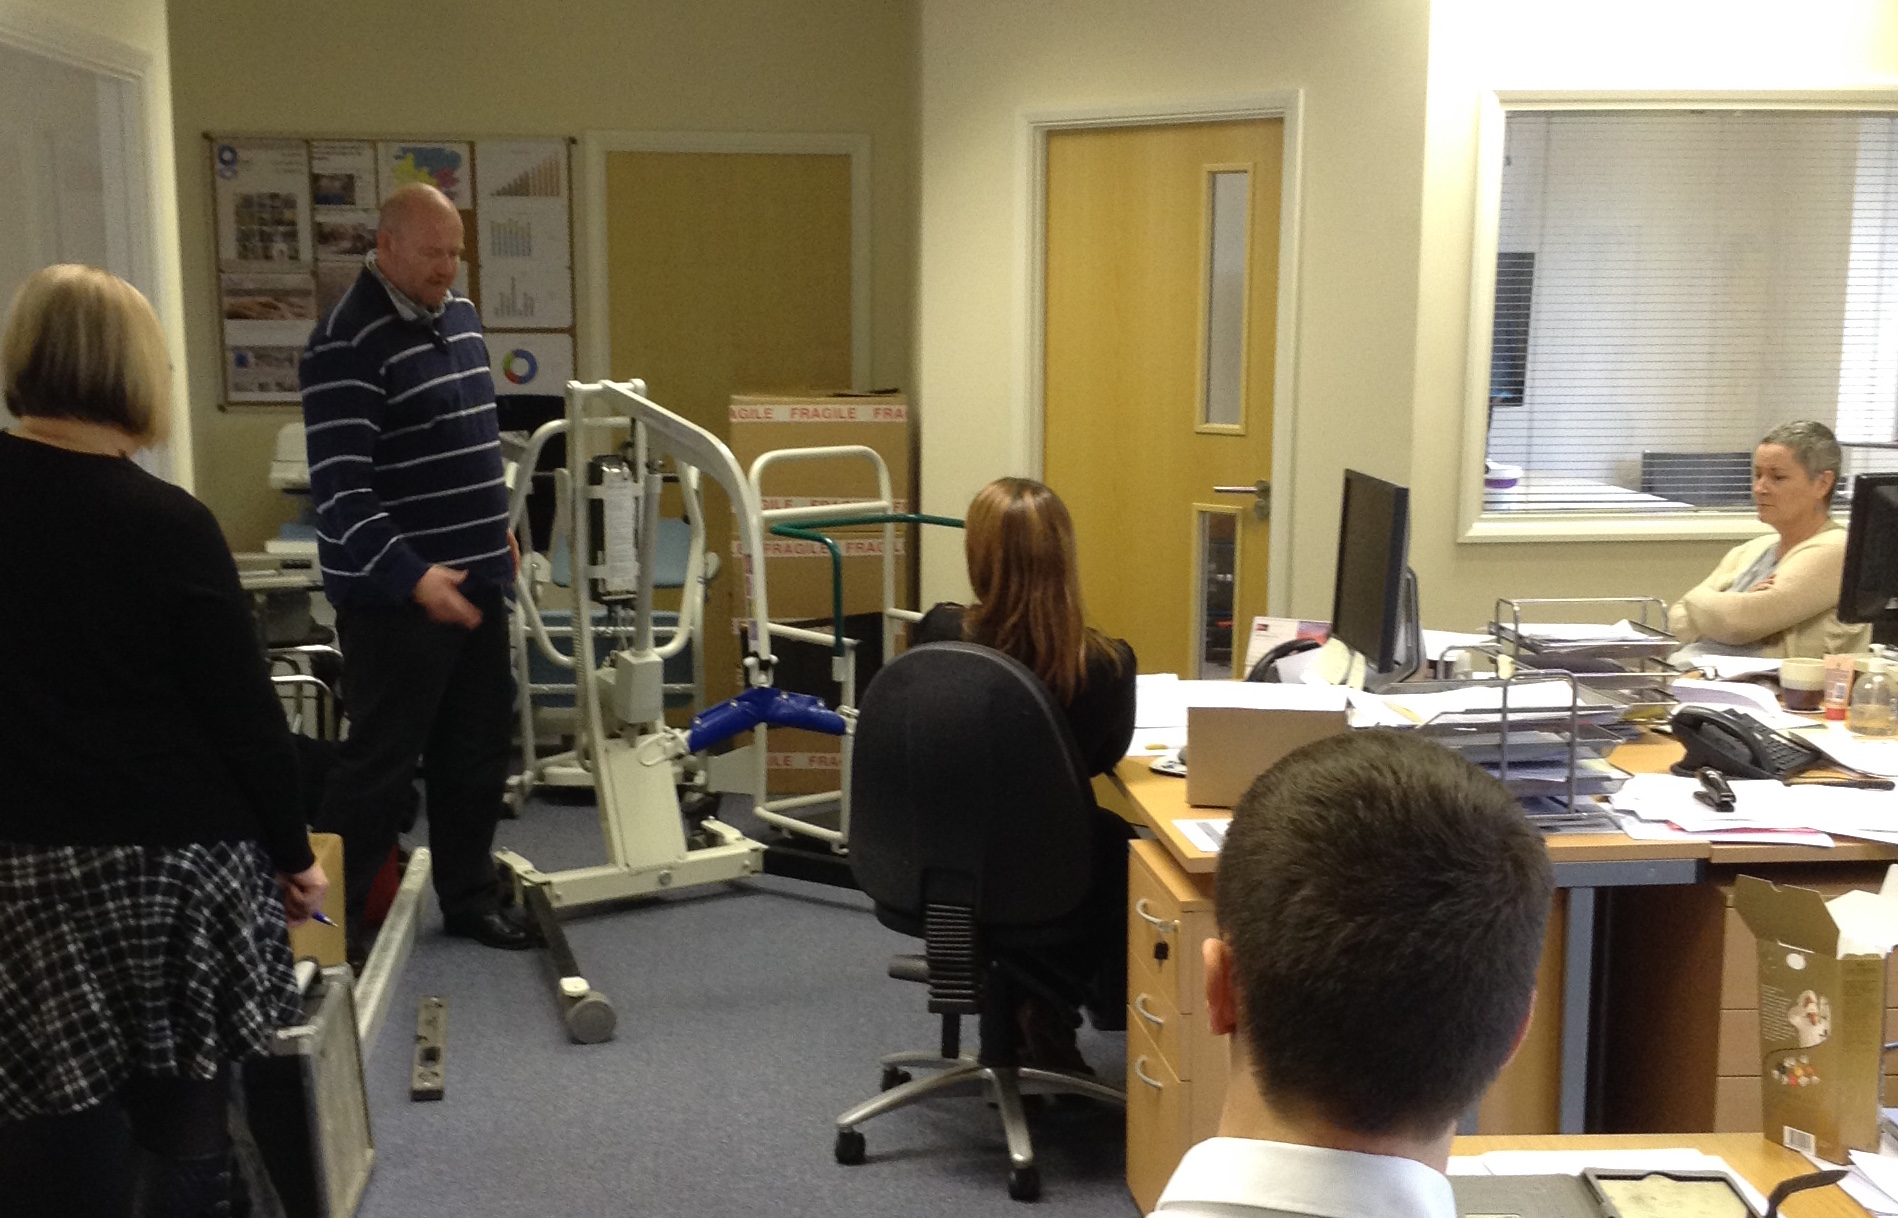 Training Session knowledge on hoisting equipment at opemed